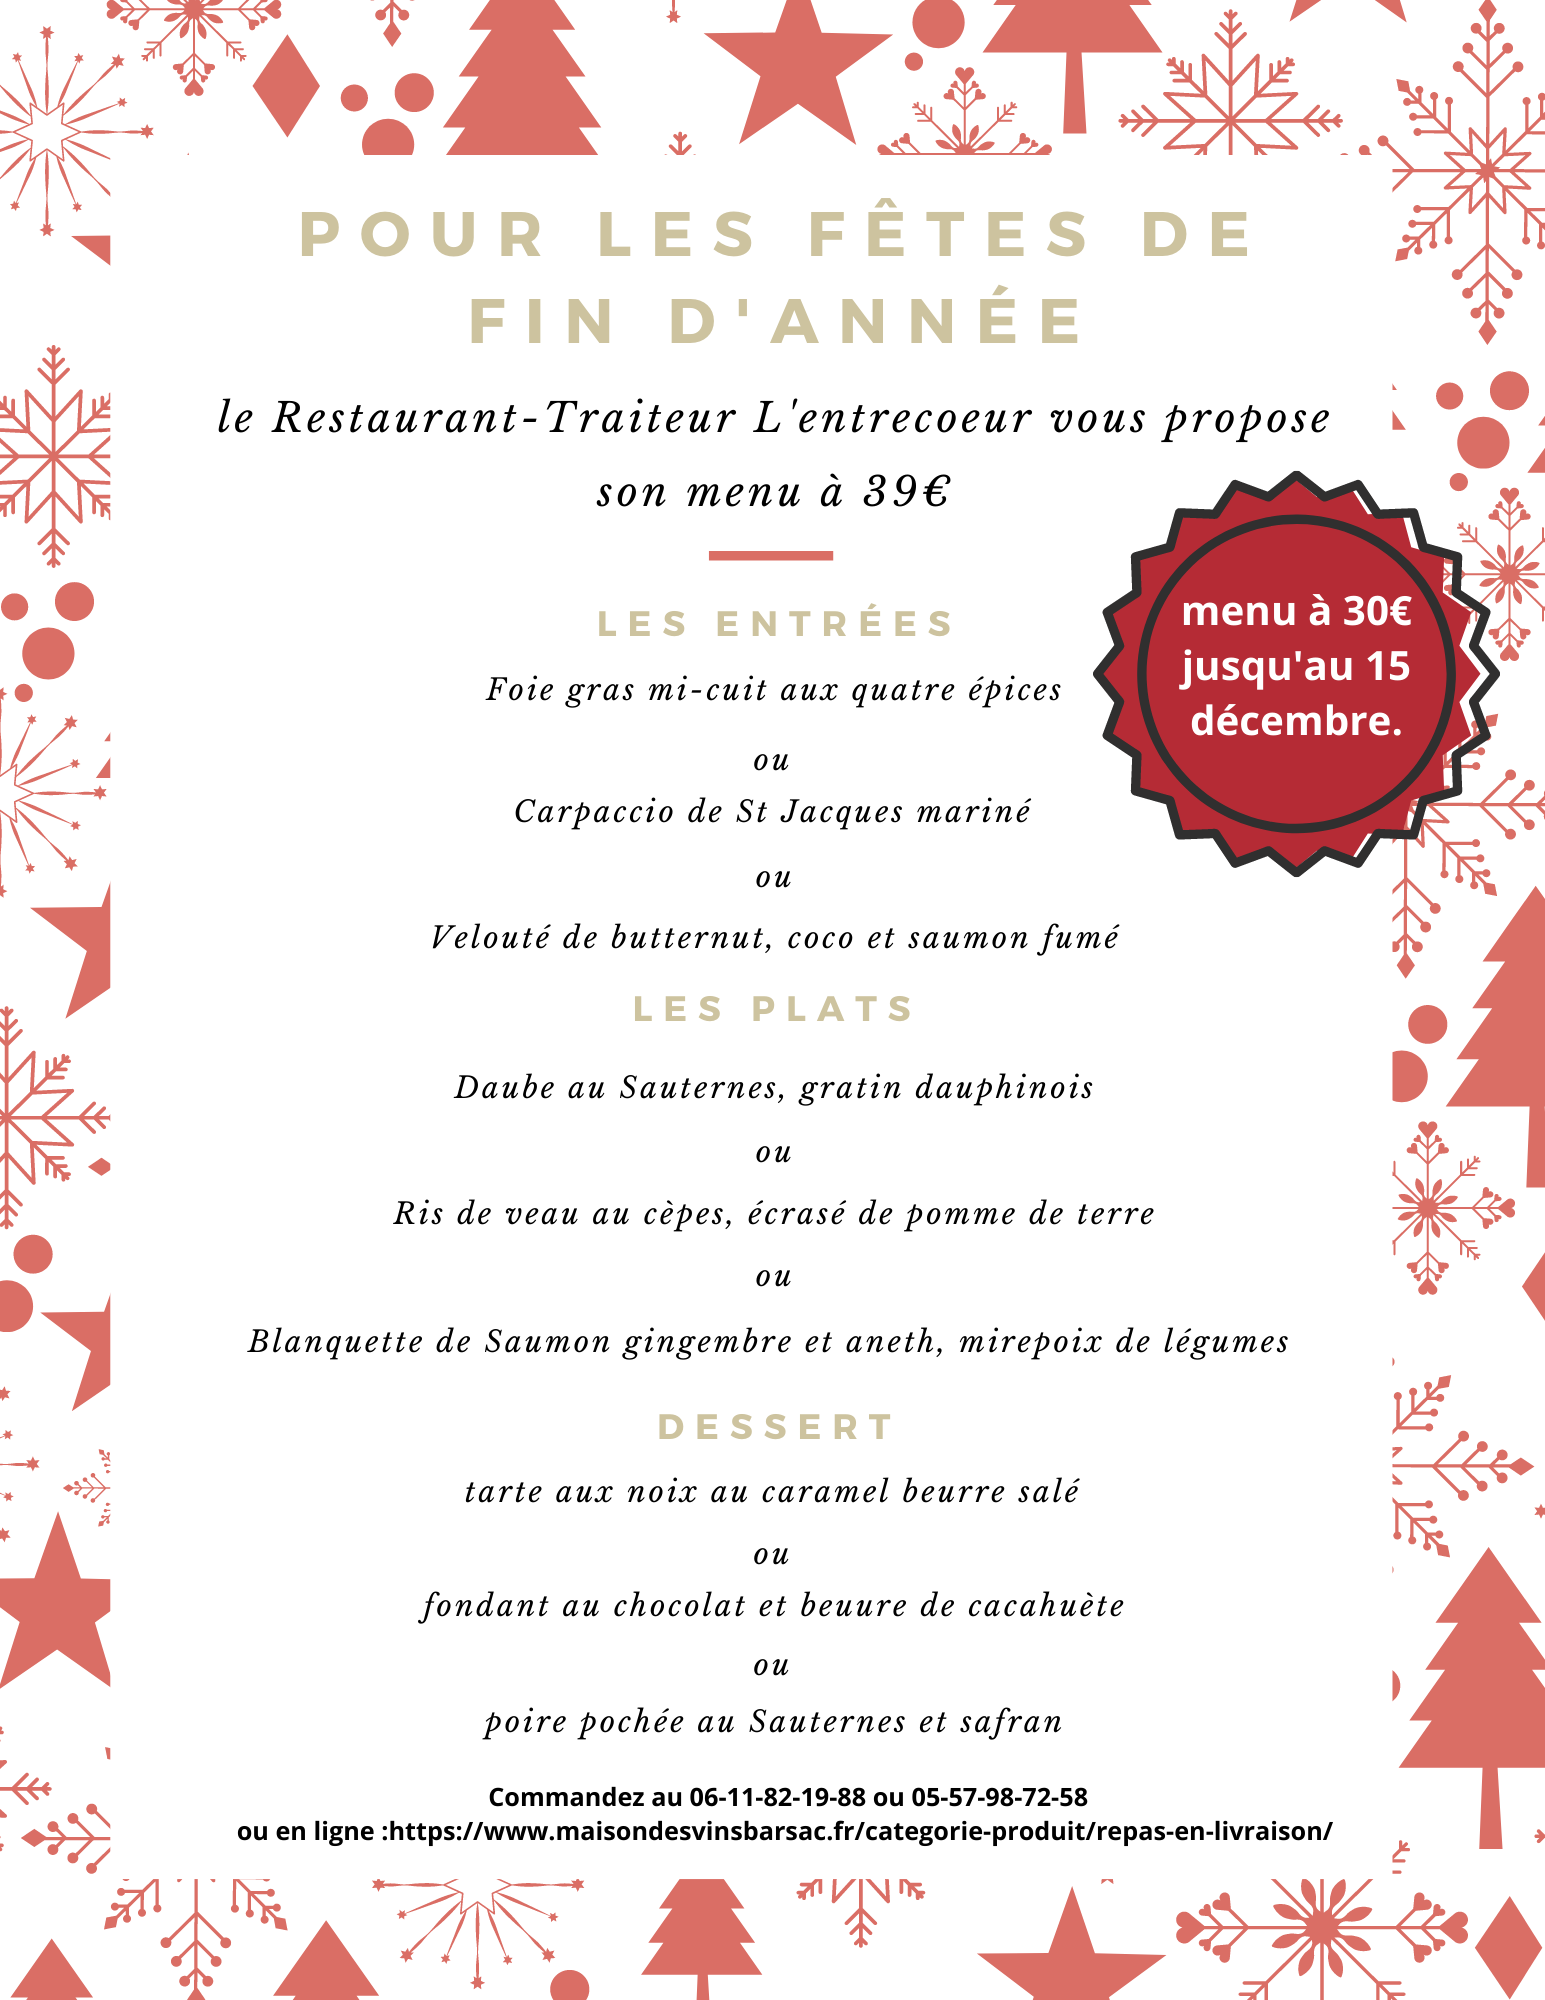 Red and Gold Outline Christmas Patterned Dinner Menu